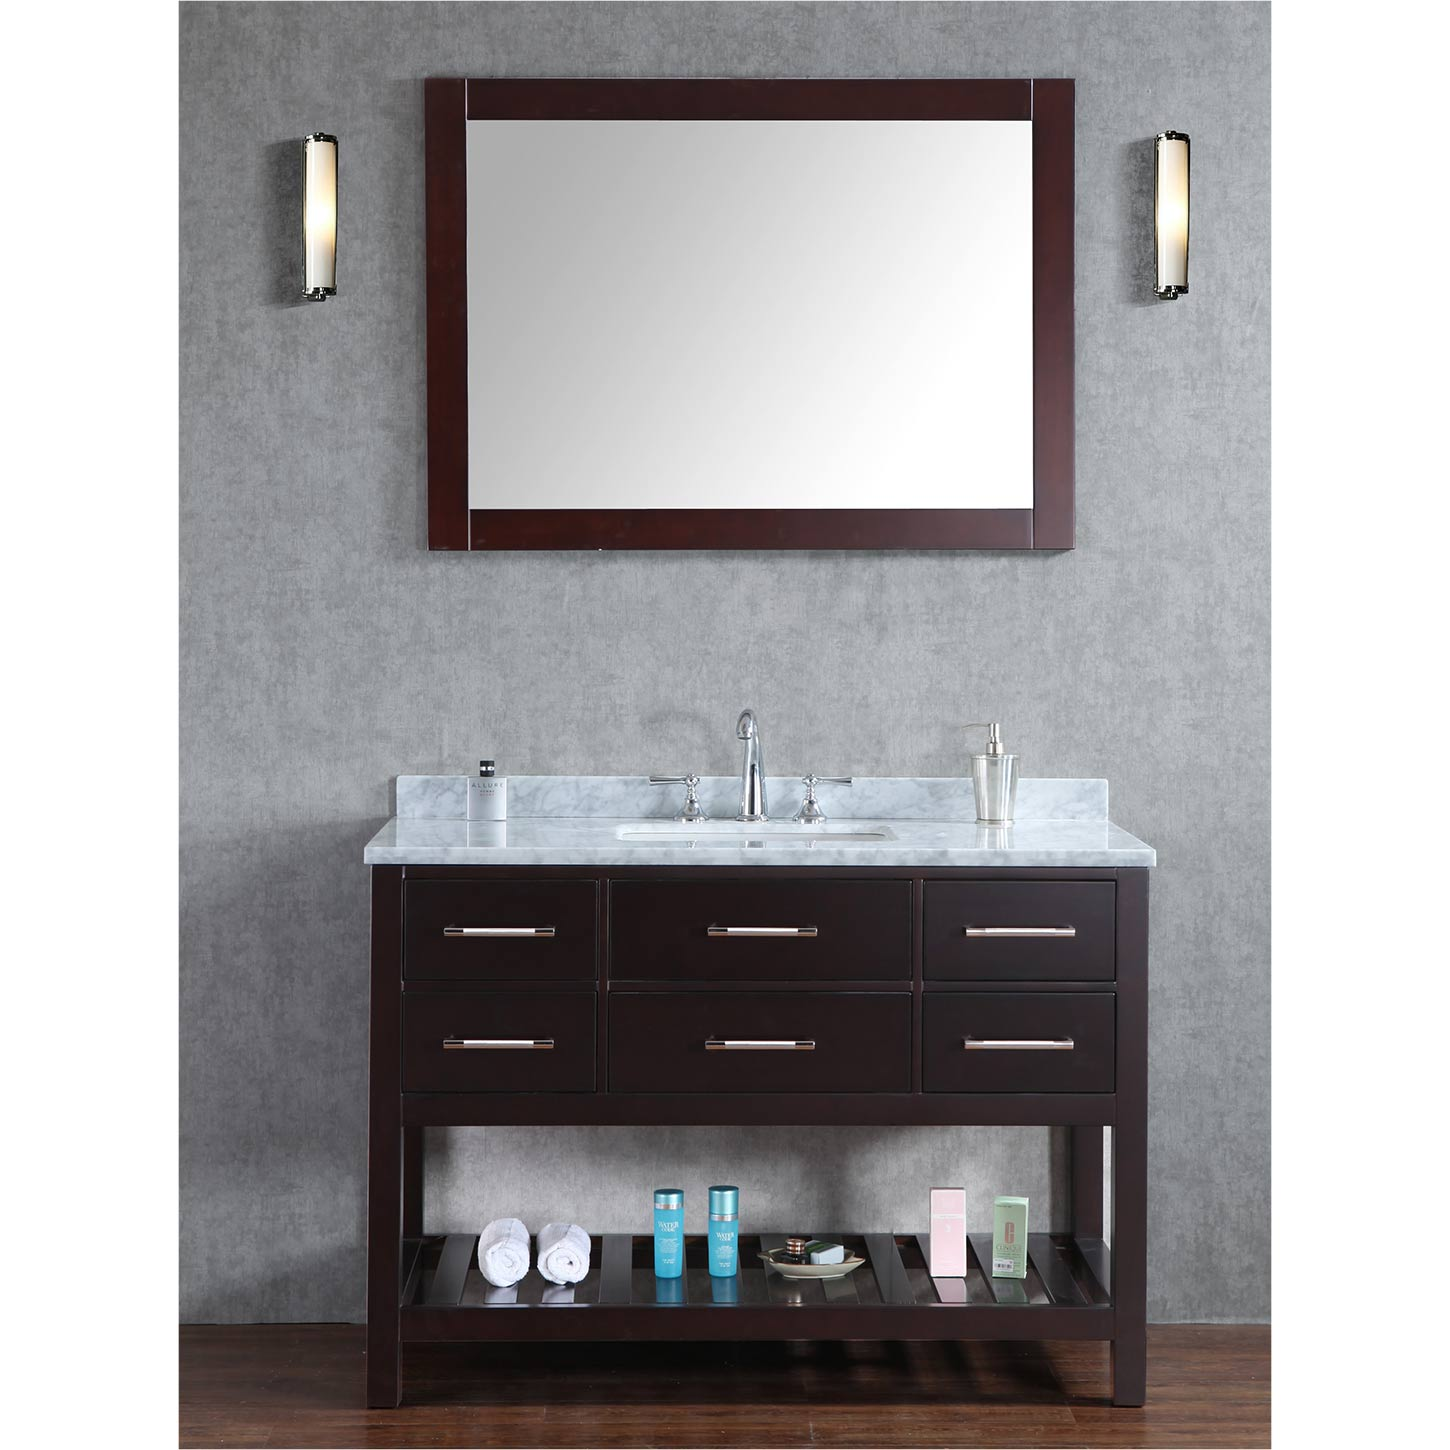 vanities decorating design ideas home interior bathroom htm vanity in and inch best colors